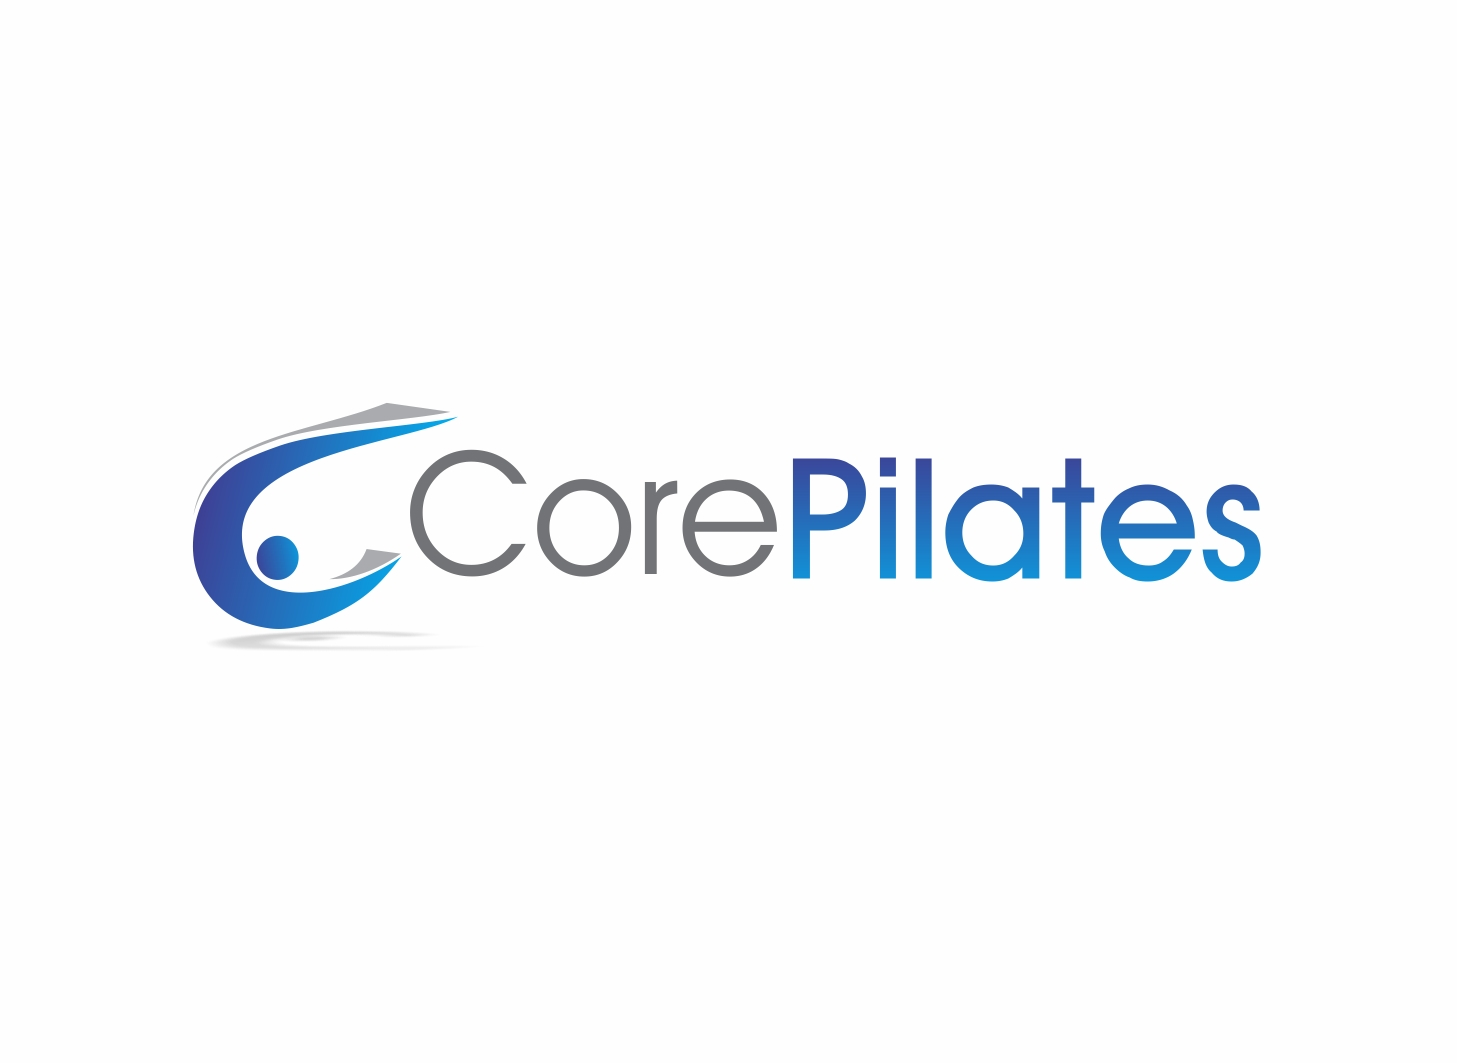 Logo Design by Zdravko Krulj - Entry No. 32 in the Logo Design Contest Core Pilates Logo Design.